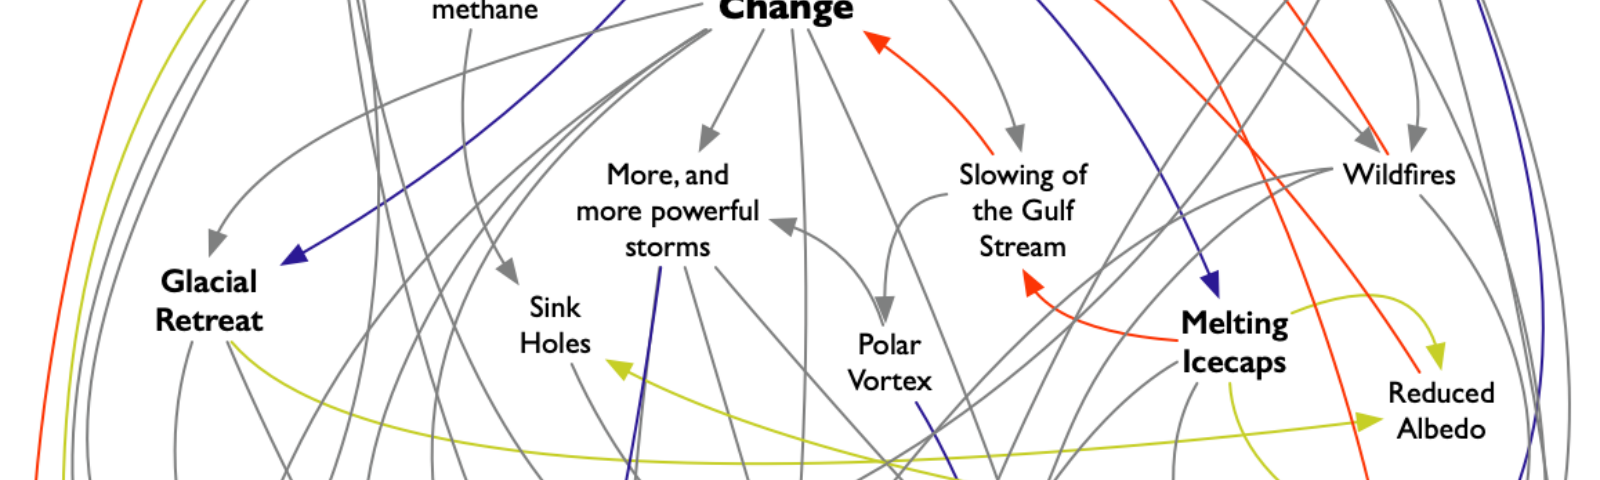 A flow chart showing the interrelated concepts around human activity, global warming, and climate change.